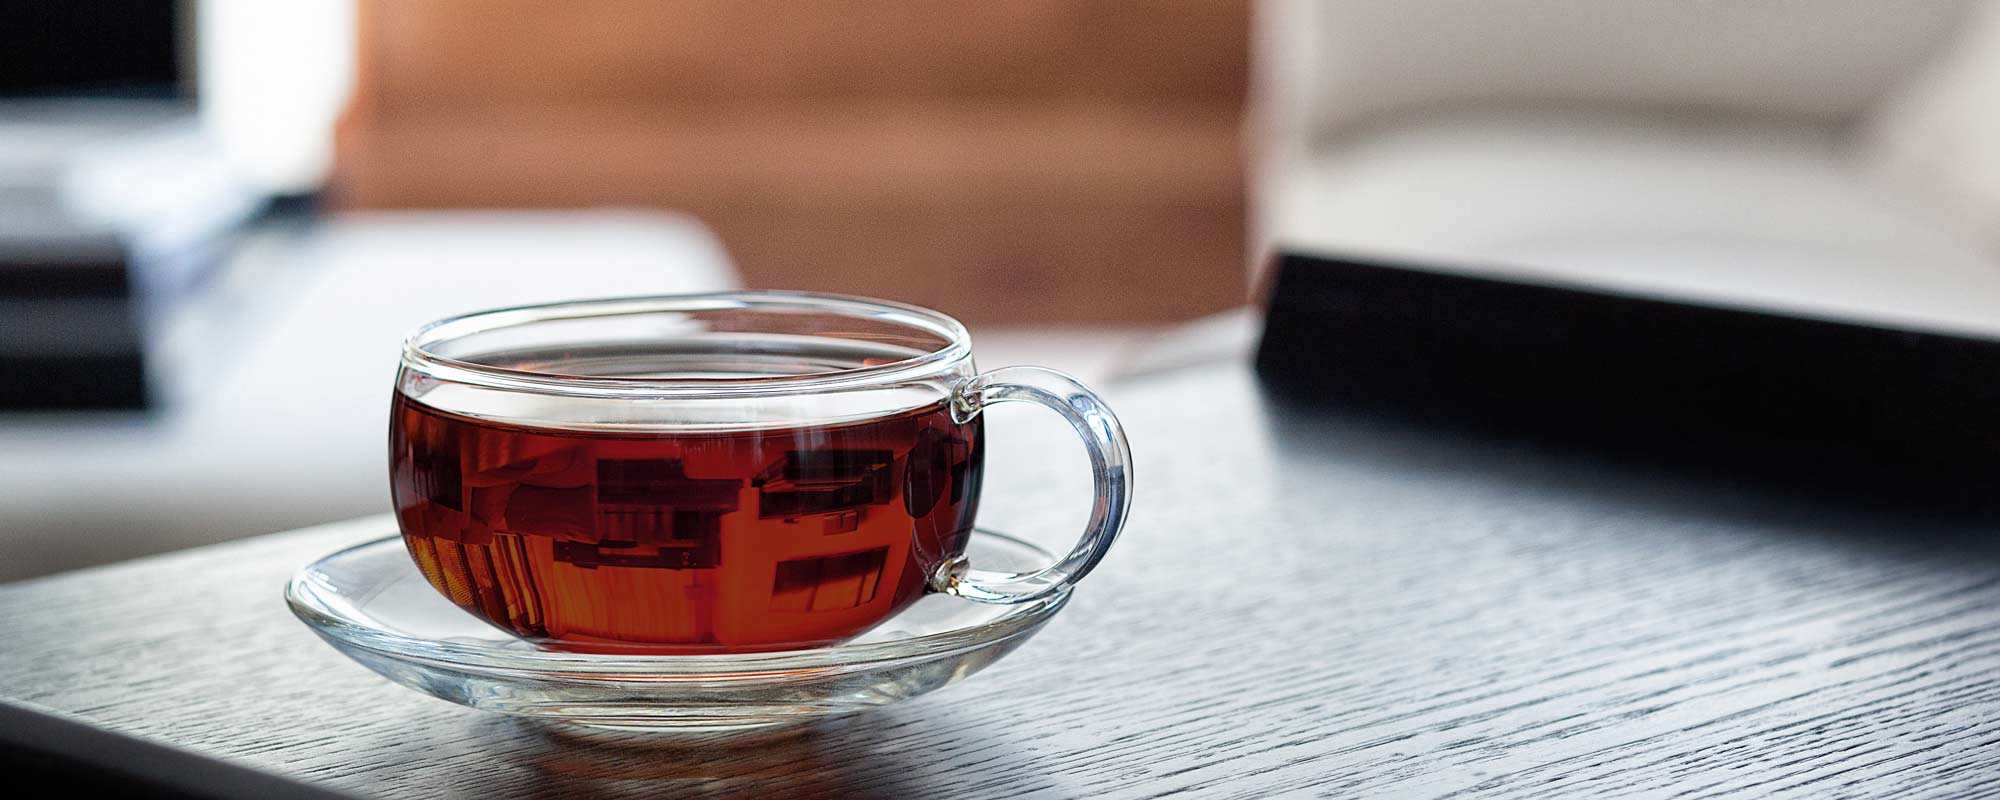 Glass Tea Cup of Assam Breakfast Tea